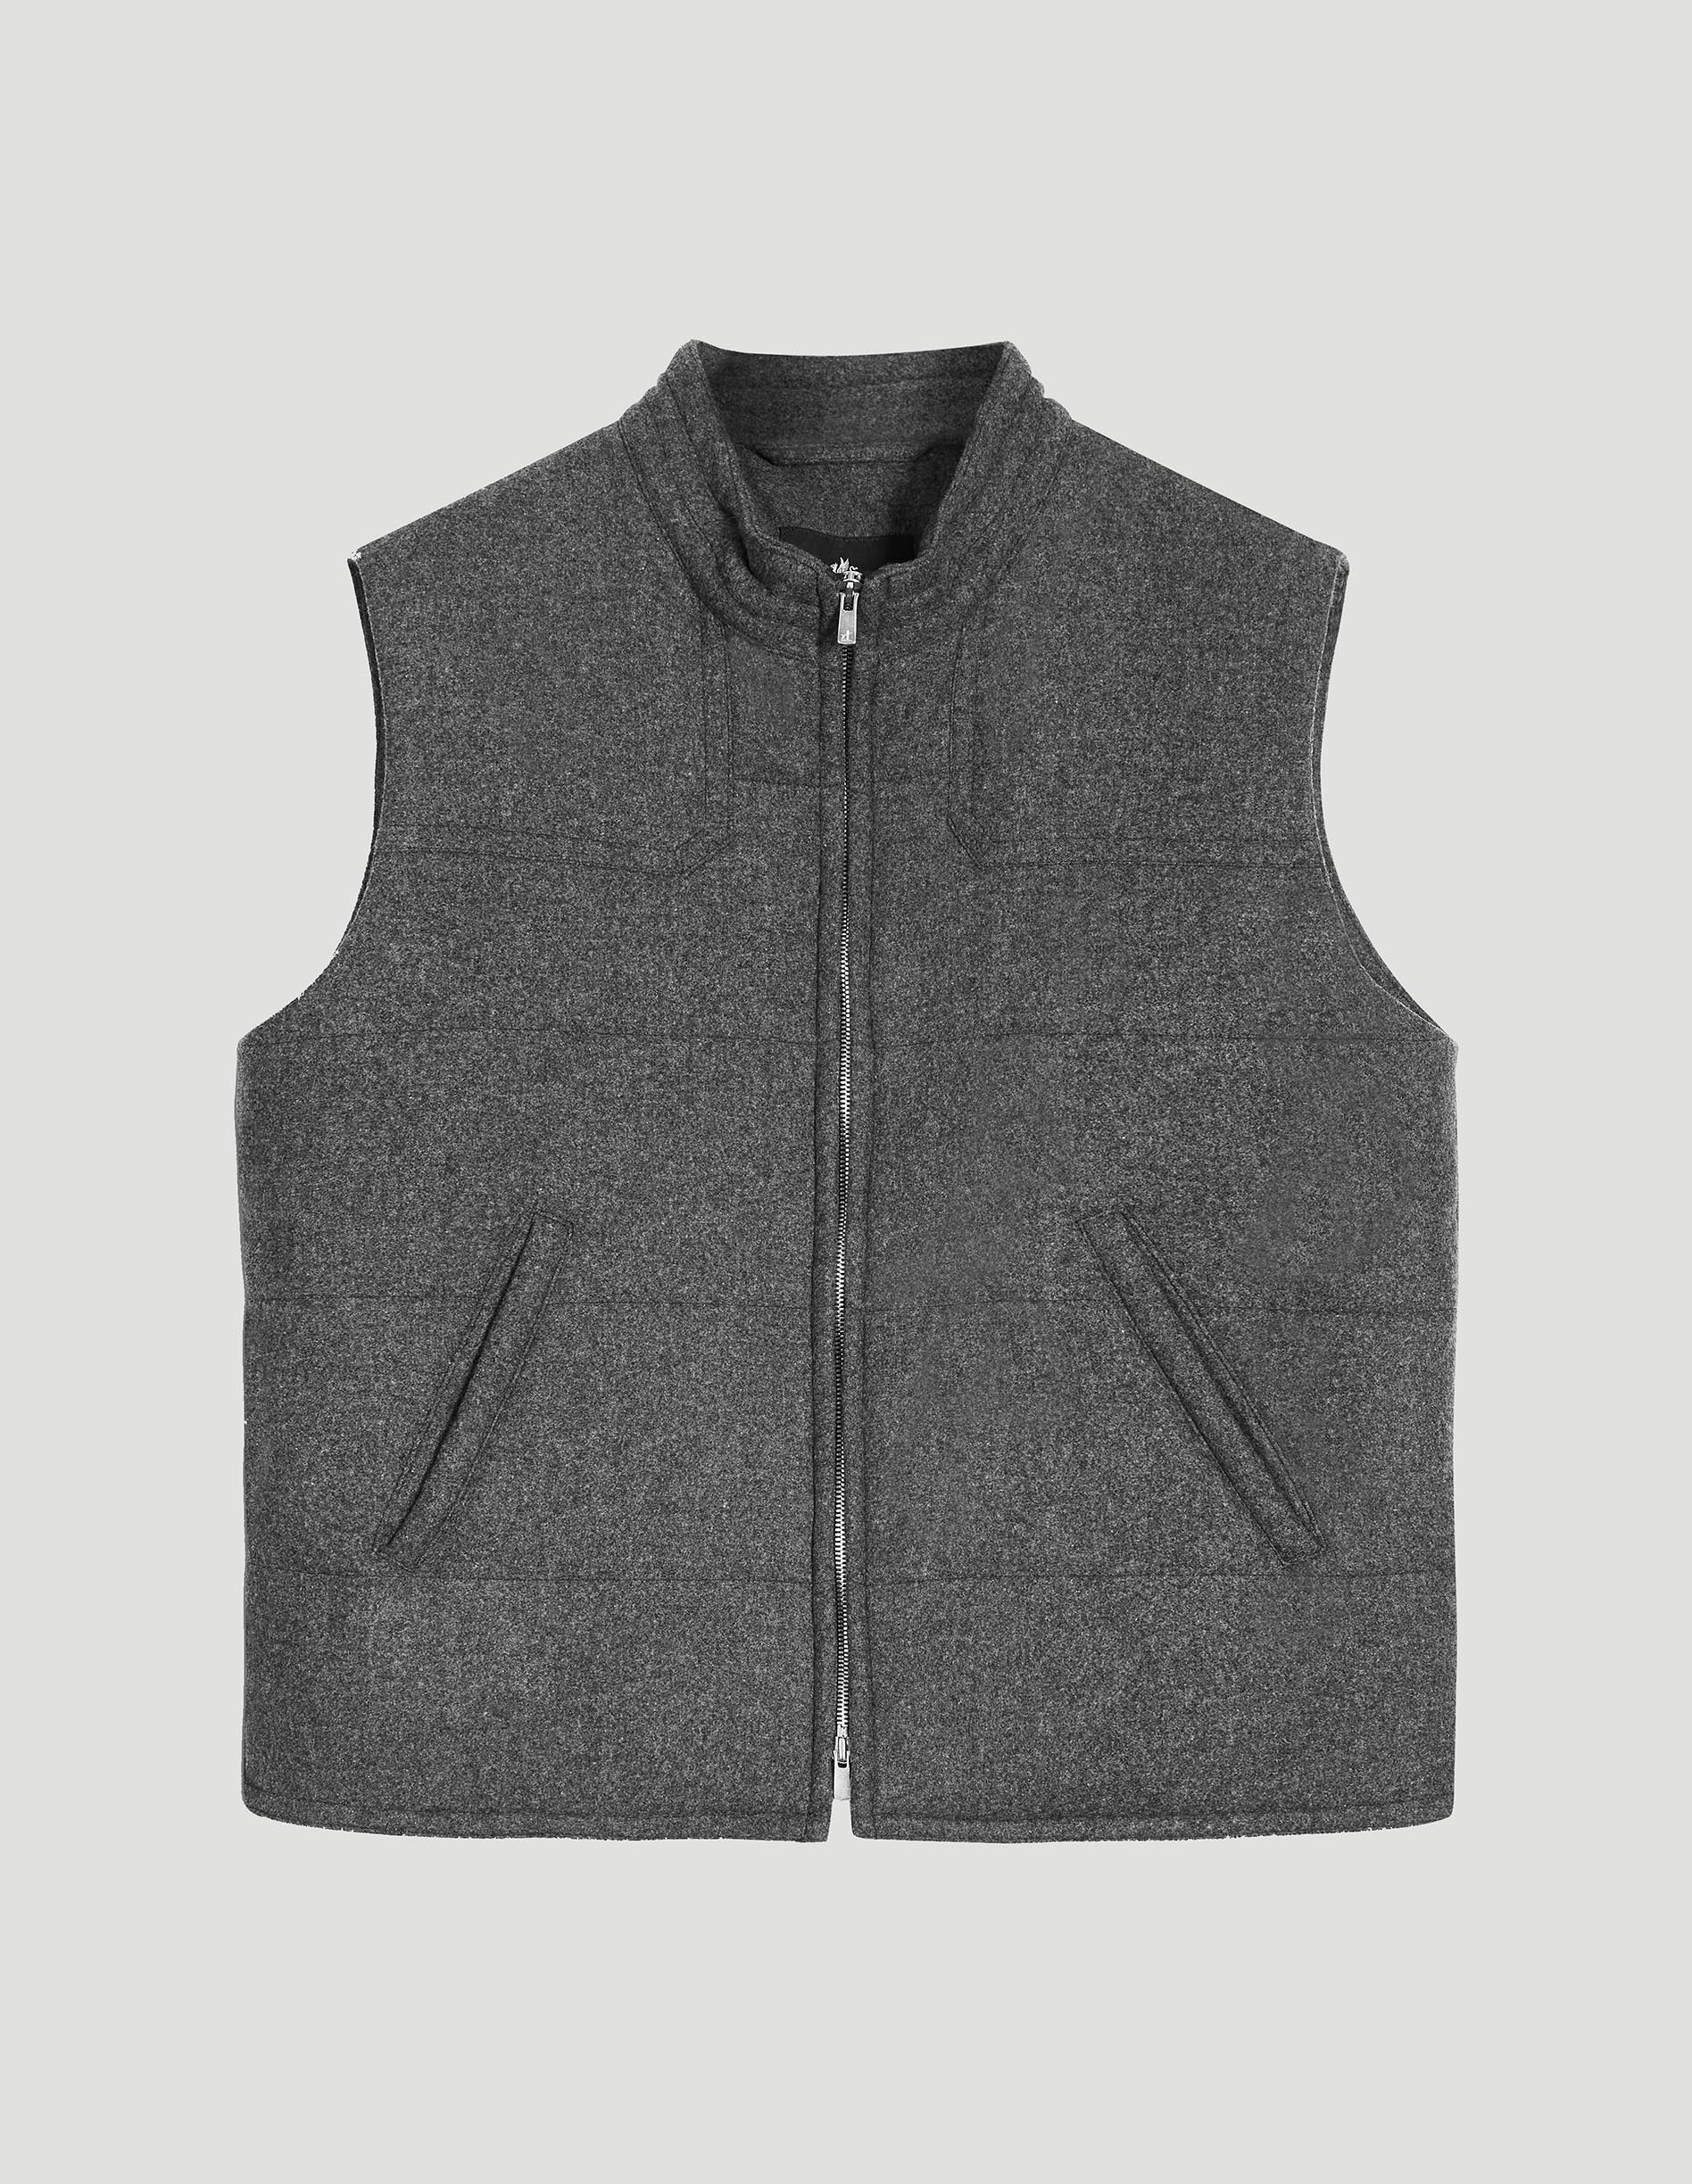 The Gilet in Grey Merino Wool